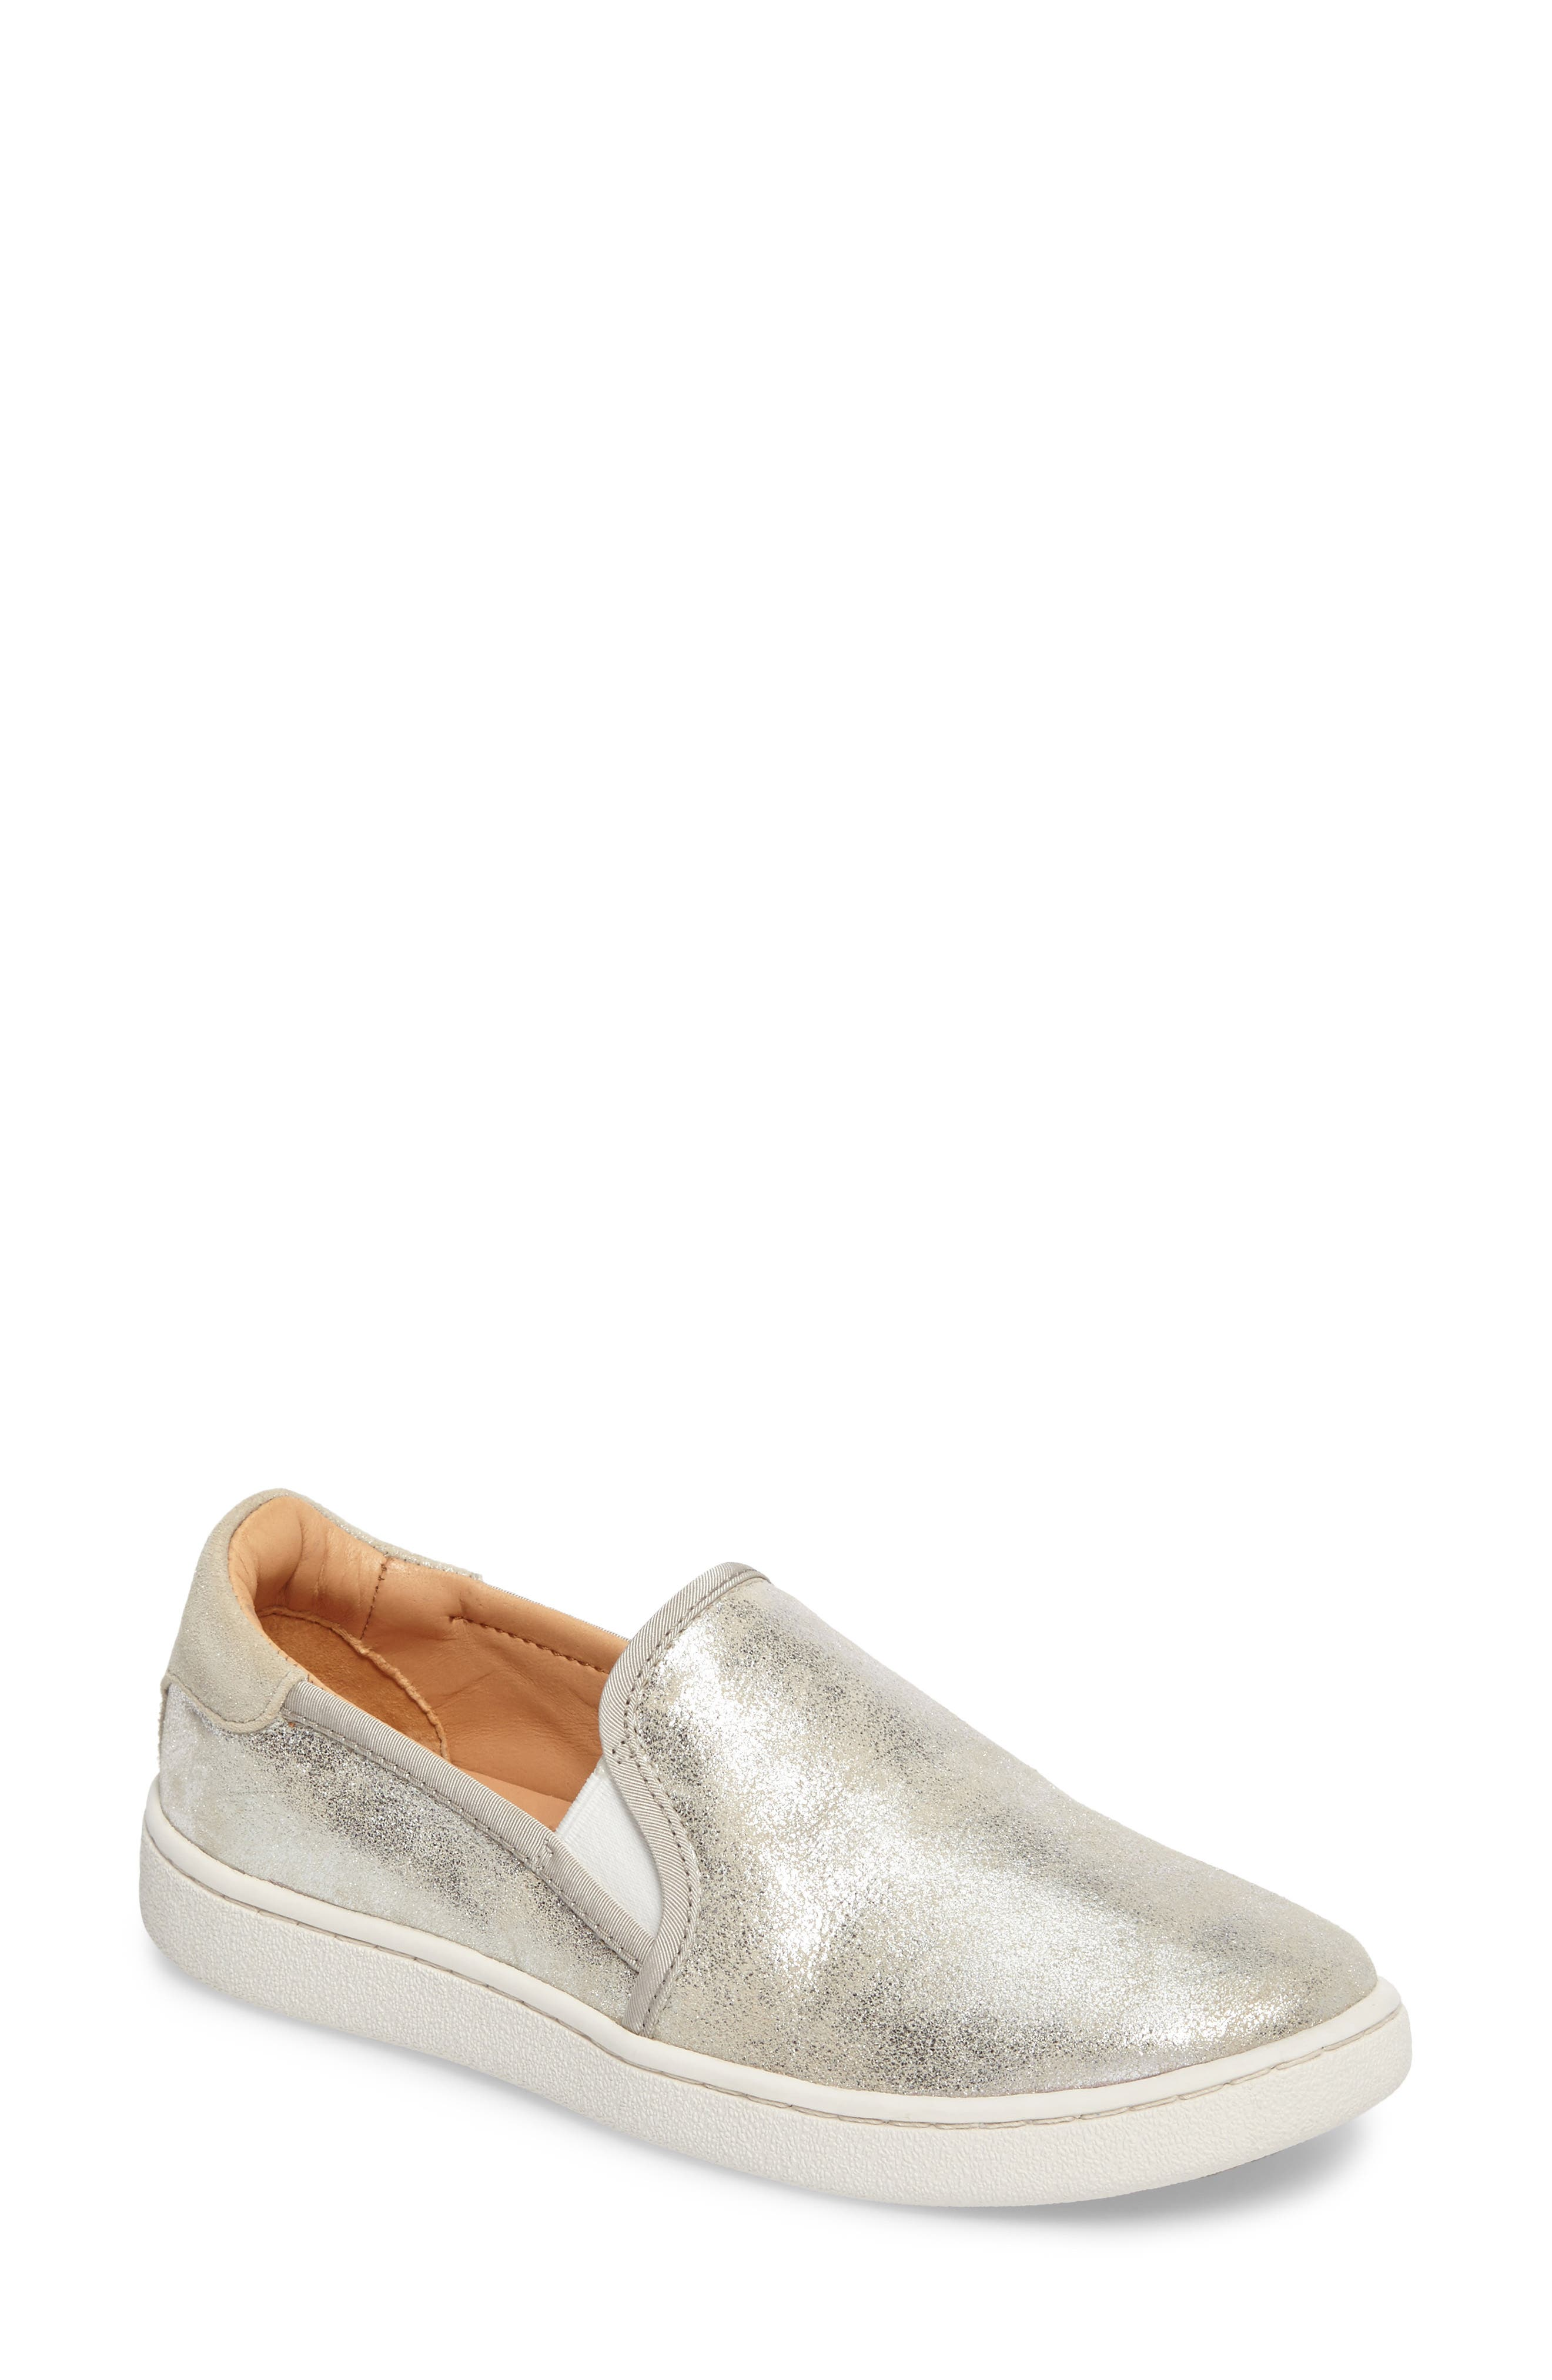 Cas Stardust Slip-On Sneaker,                         Main,                         color, Silver Leather